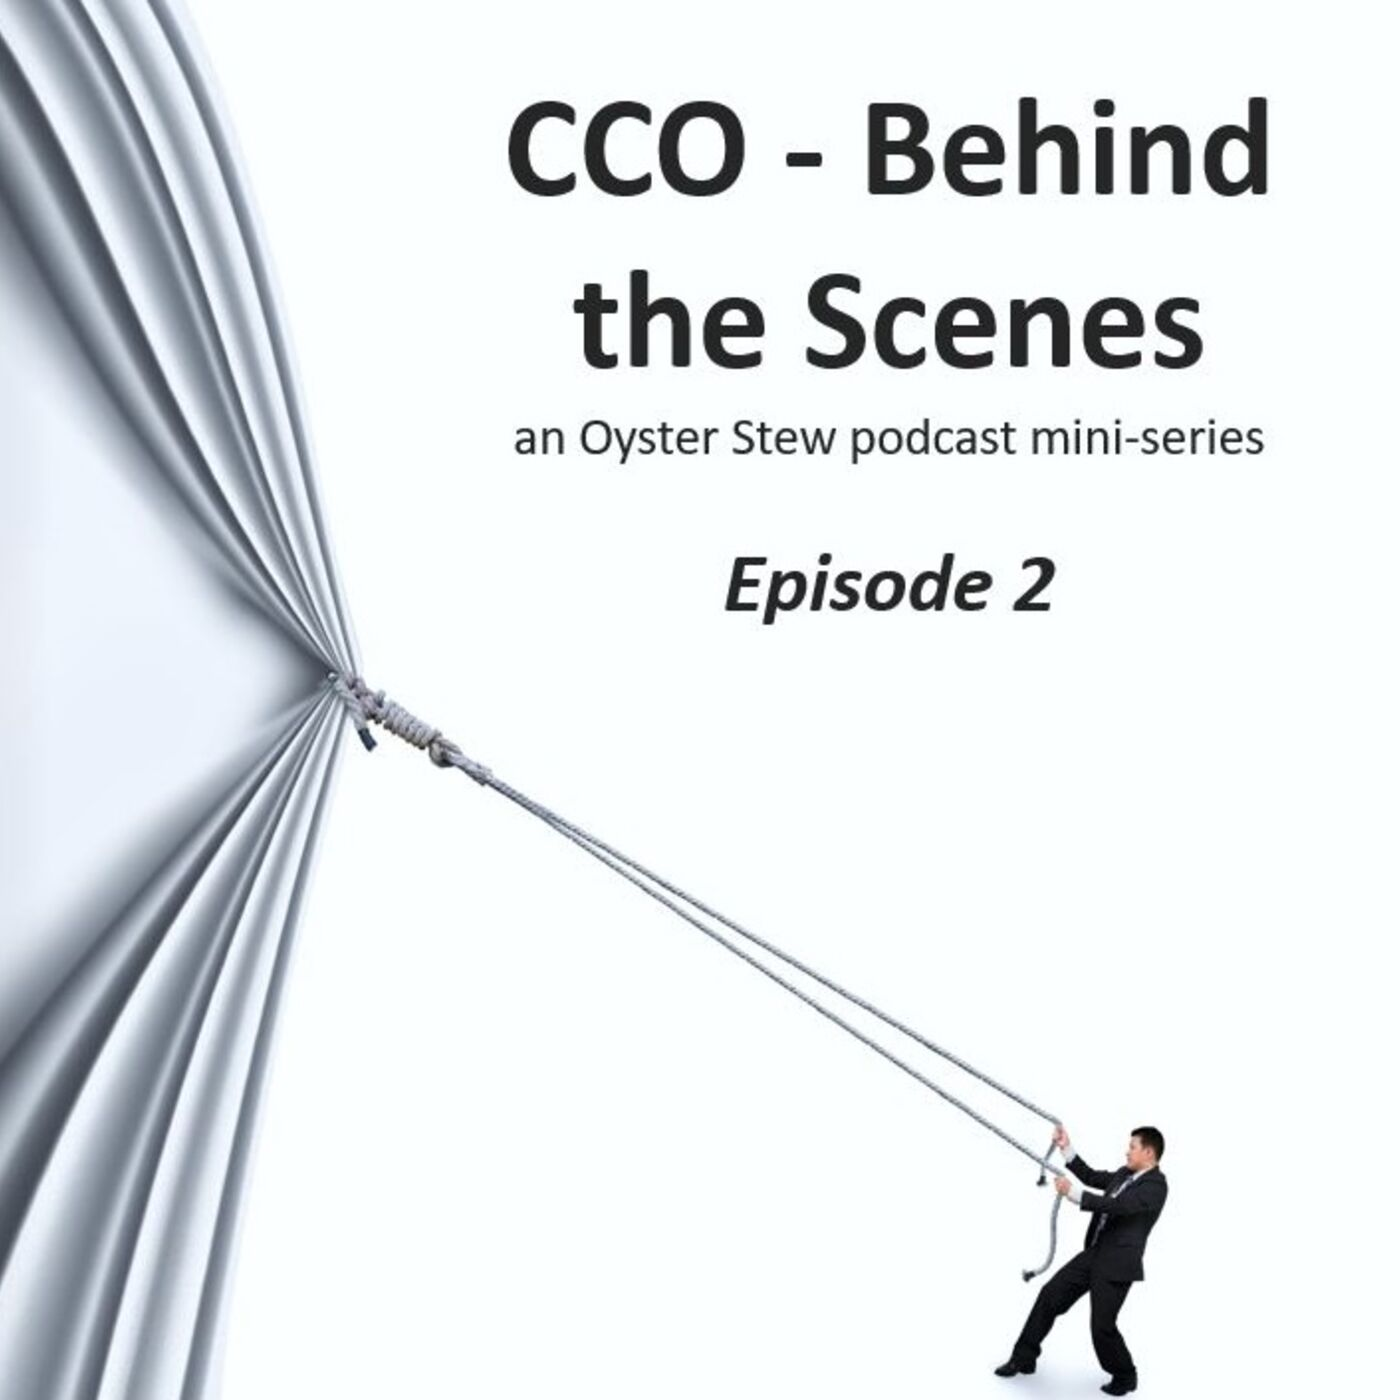 CCO Behind the Scenes - Episode 2